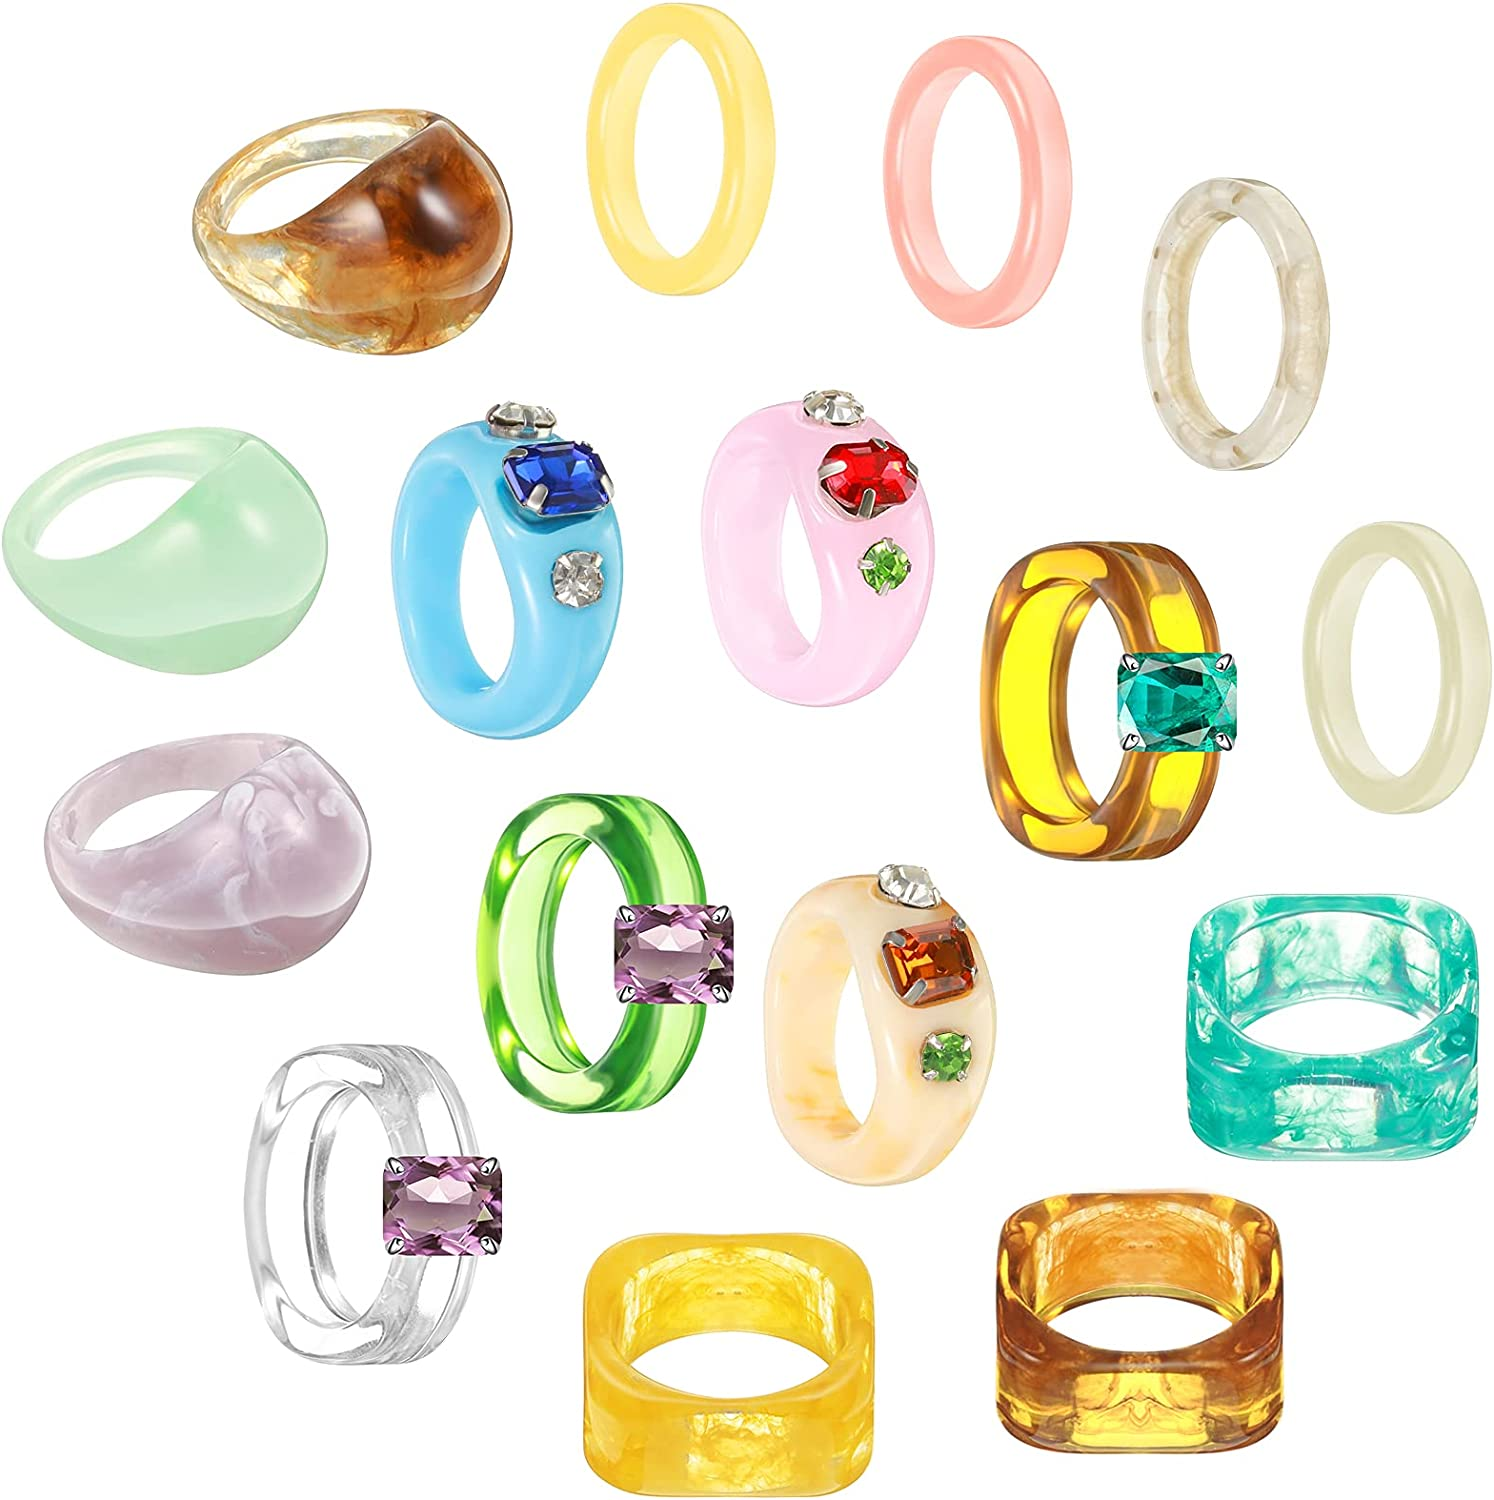 16 Pieces Resin Rings Acrylic Cute Trendy Rhinestone Rings Colorful Index Finger Ring Jewelry Plastic Resin Square Gem Stackable Chunky Ring for Women Girls